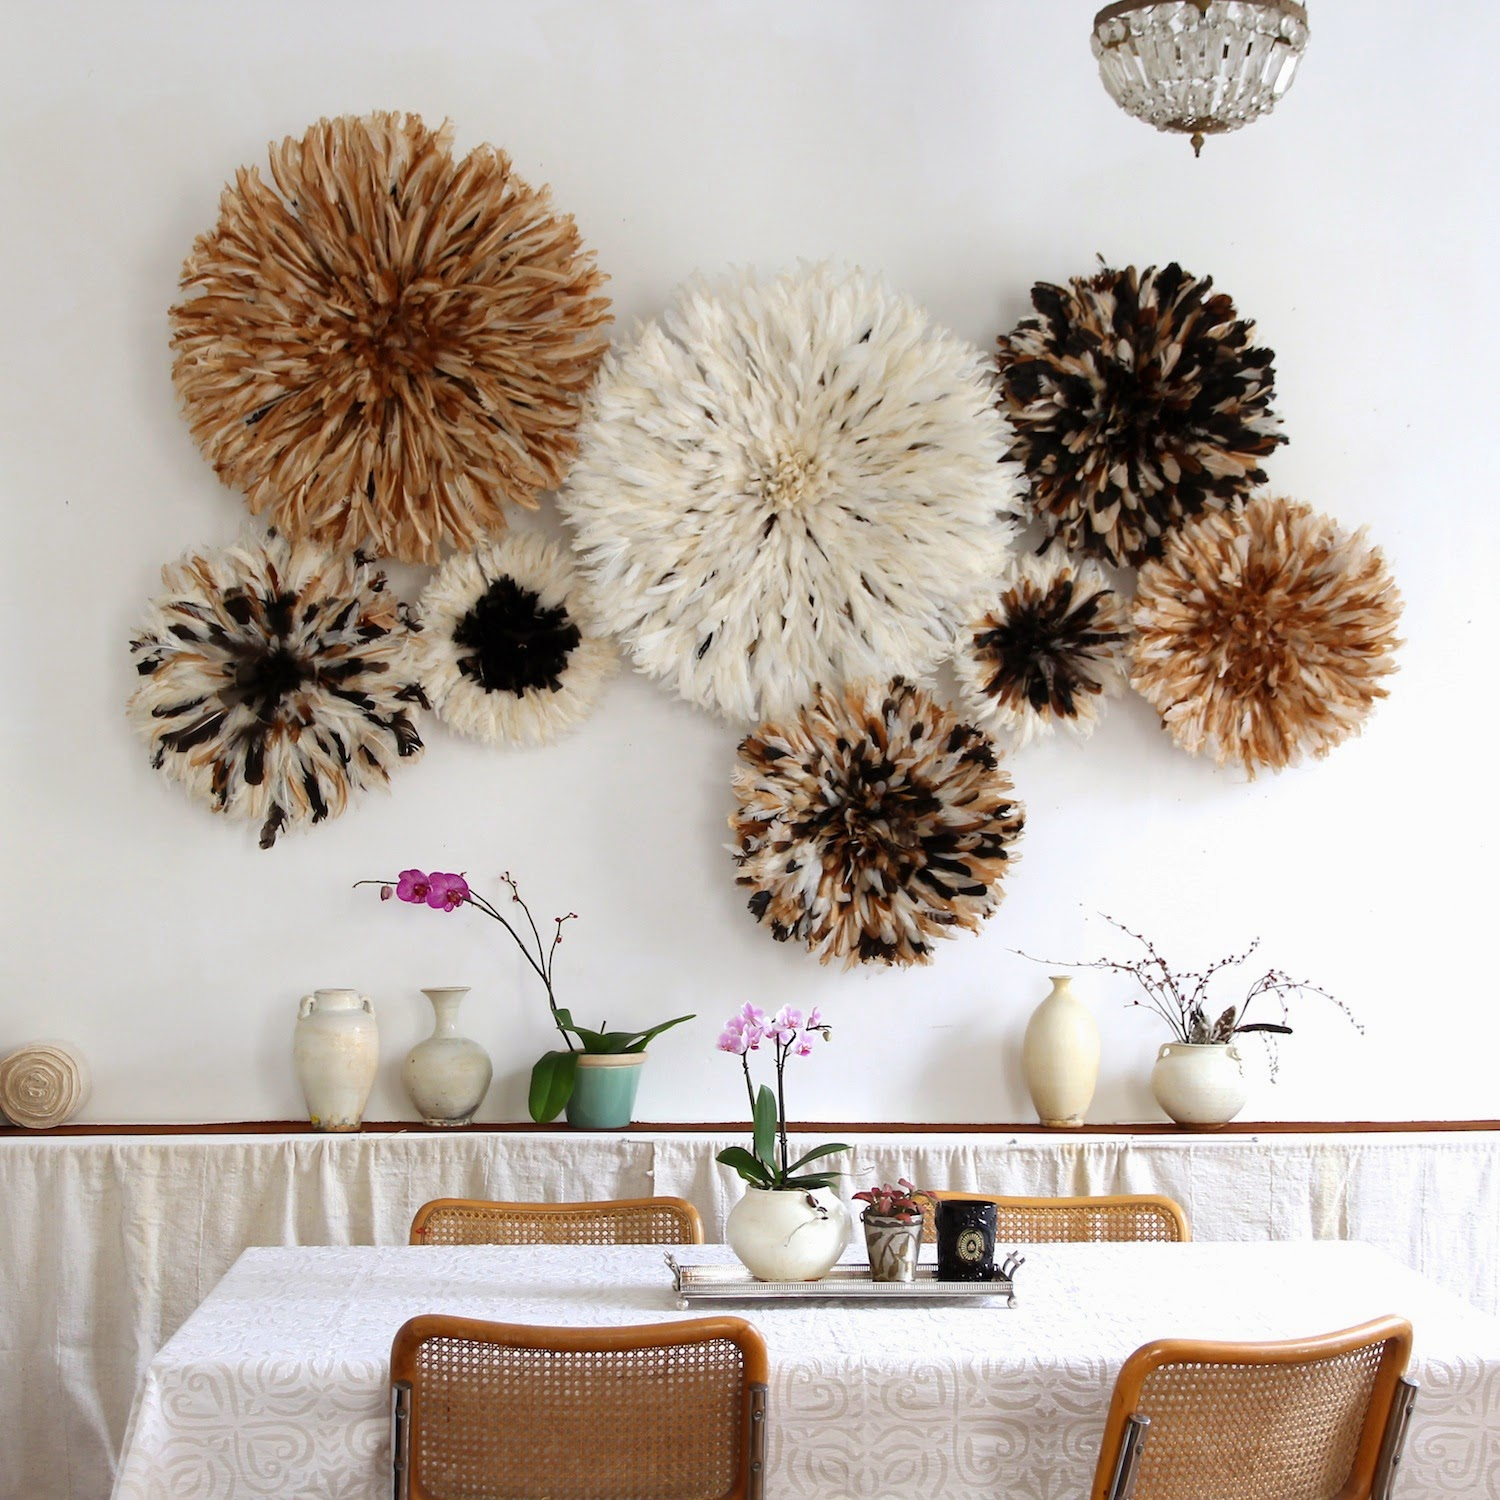 20 Ways to Decorate with African Juju Hats - Feather Headdresses - Interior Design - Natural Juju Hat Installation in a Dining Room